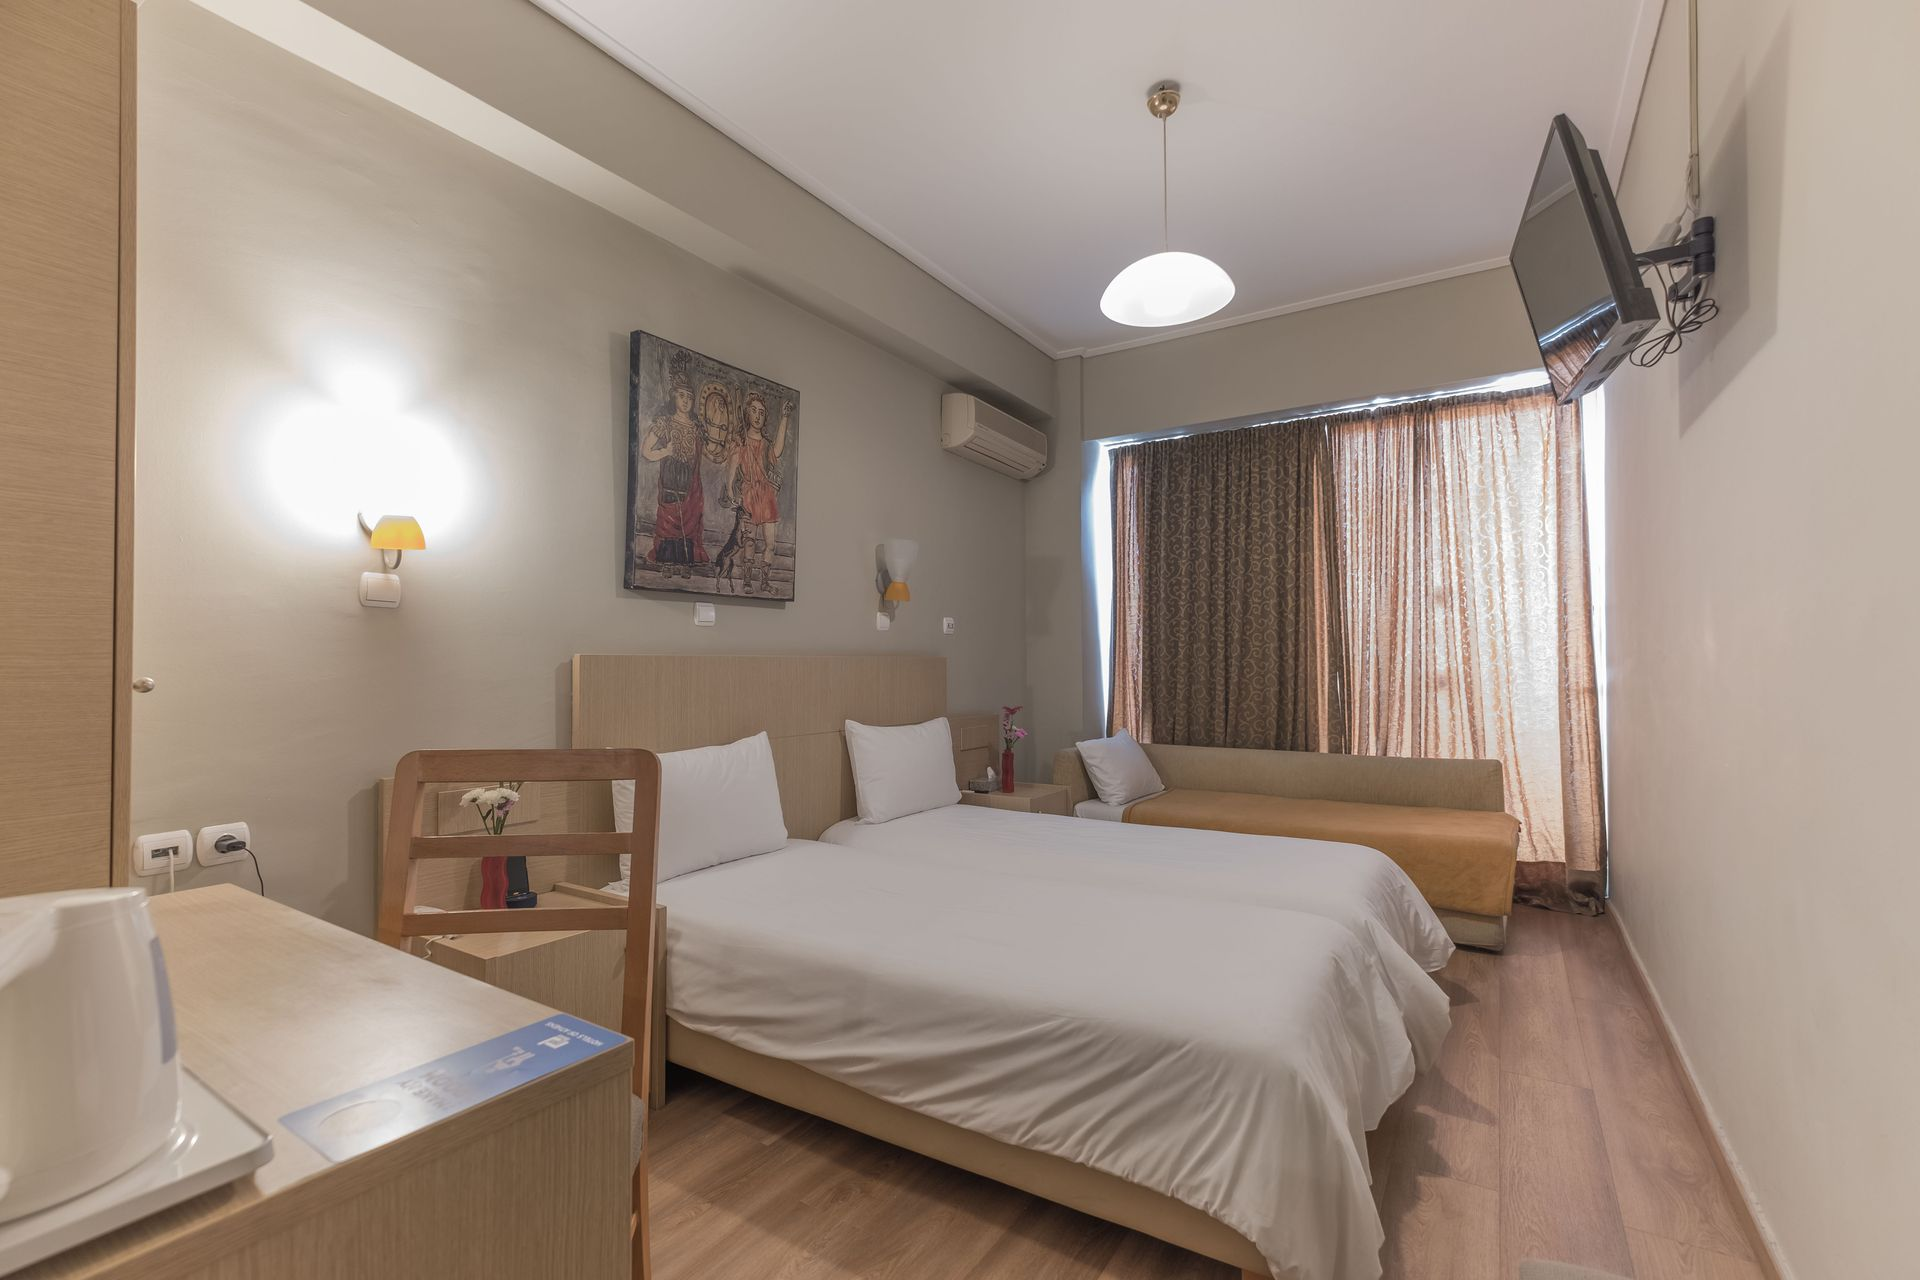 myATHENS Hotel - Αθήνα ✦ 2 Ημέρες (1 Διανυκτέρευση) ✦ 2 άτομα ✦ Πρωινό ✦ έως 29/04/2020 ✦ Free WiFi